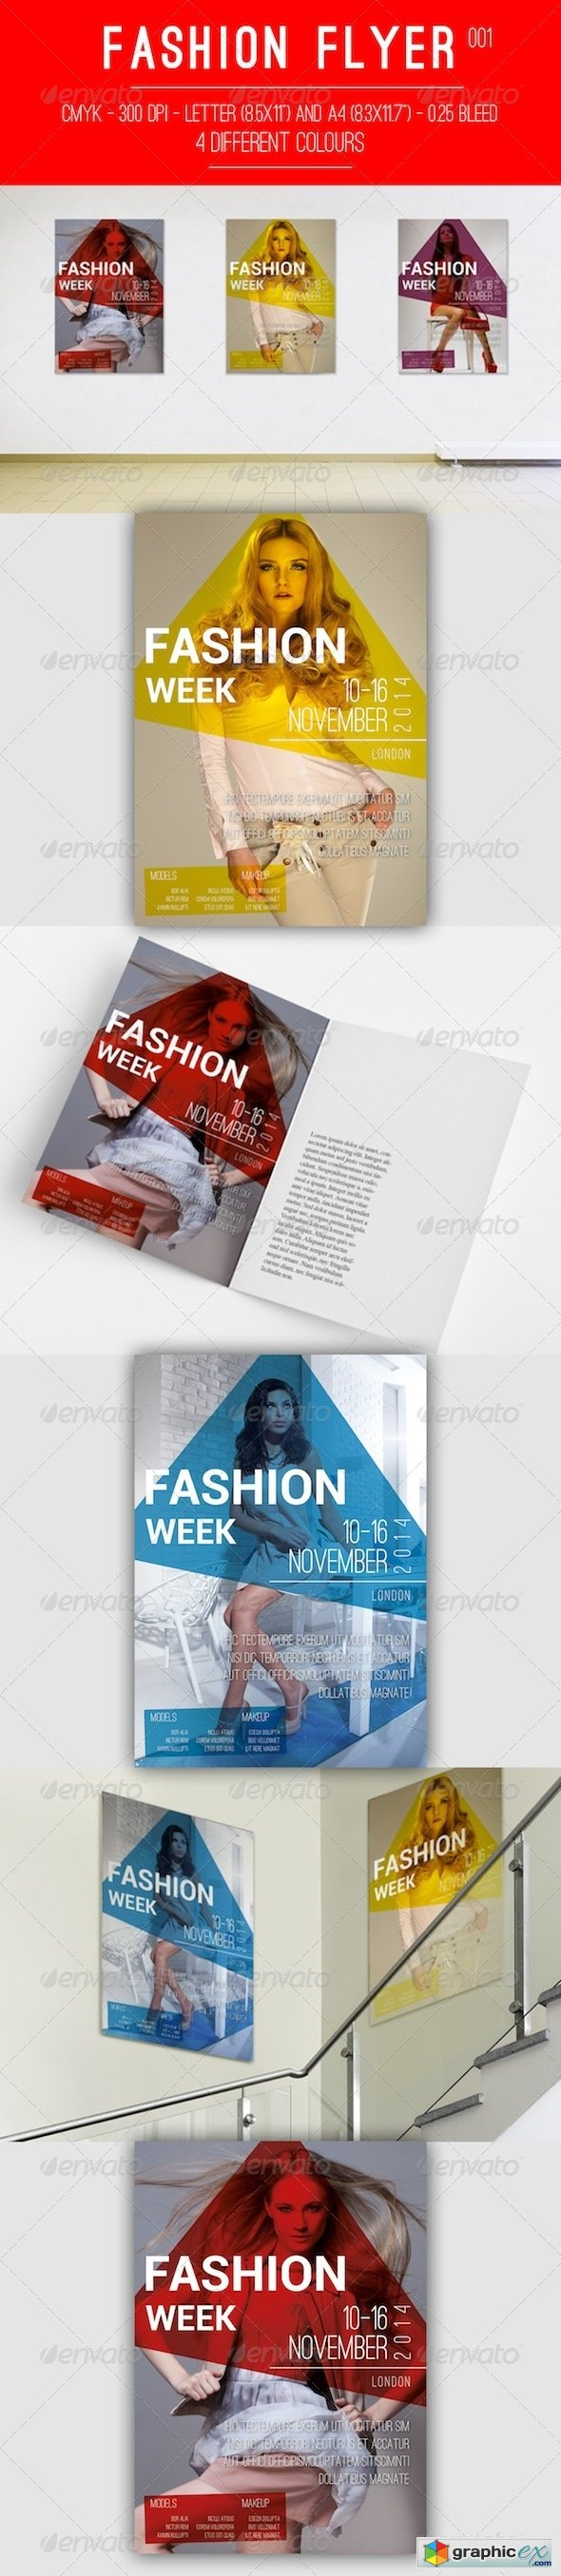 Fashion Flyer 001 6064481